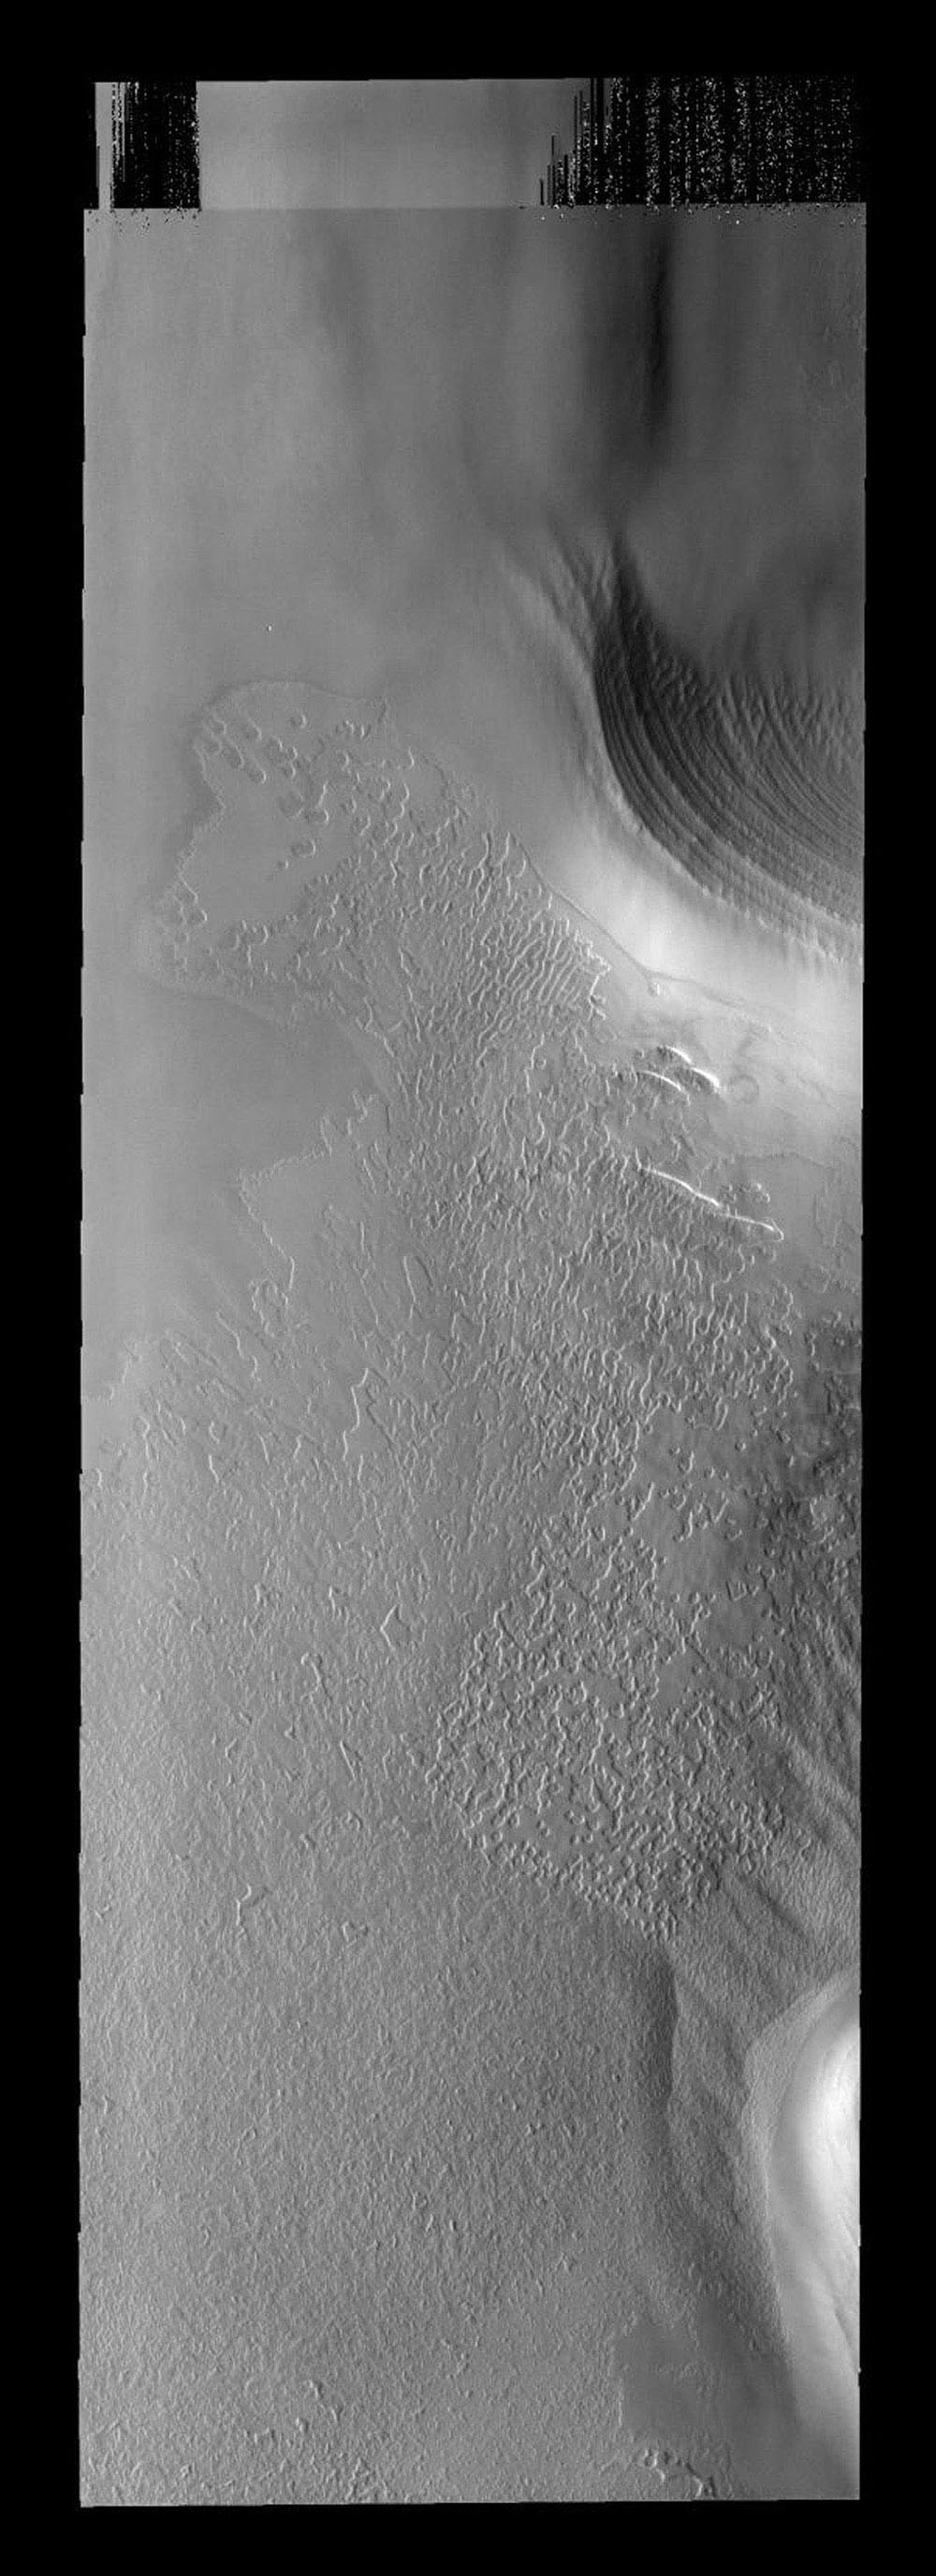 This image from NASA's Mars Odyssey spacecraft shows Mars' south polar image and its variety of surface textures.